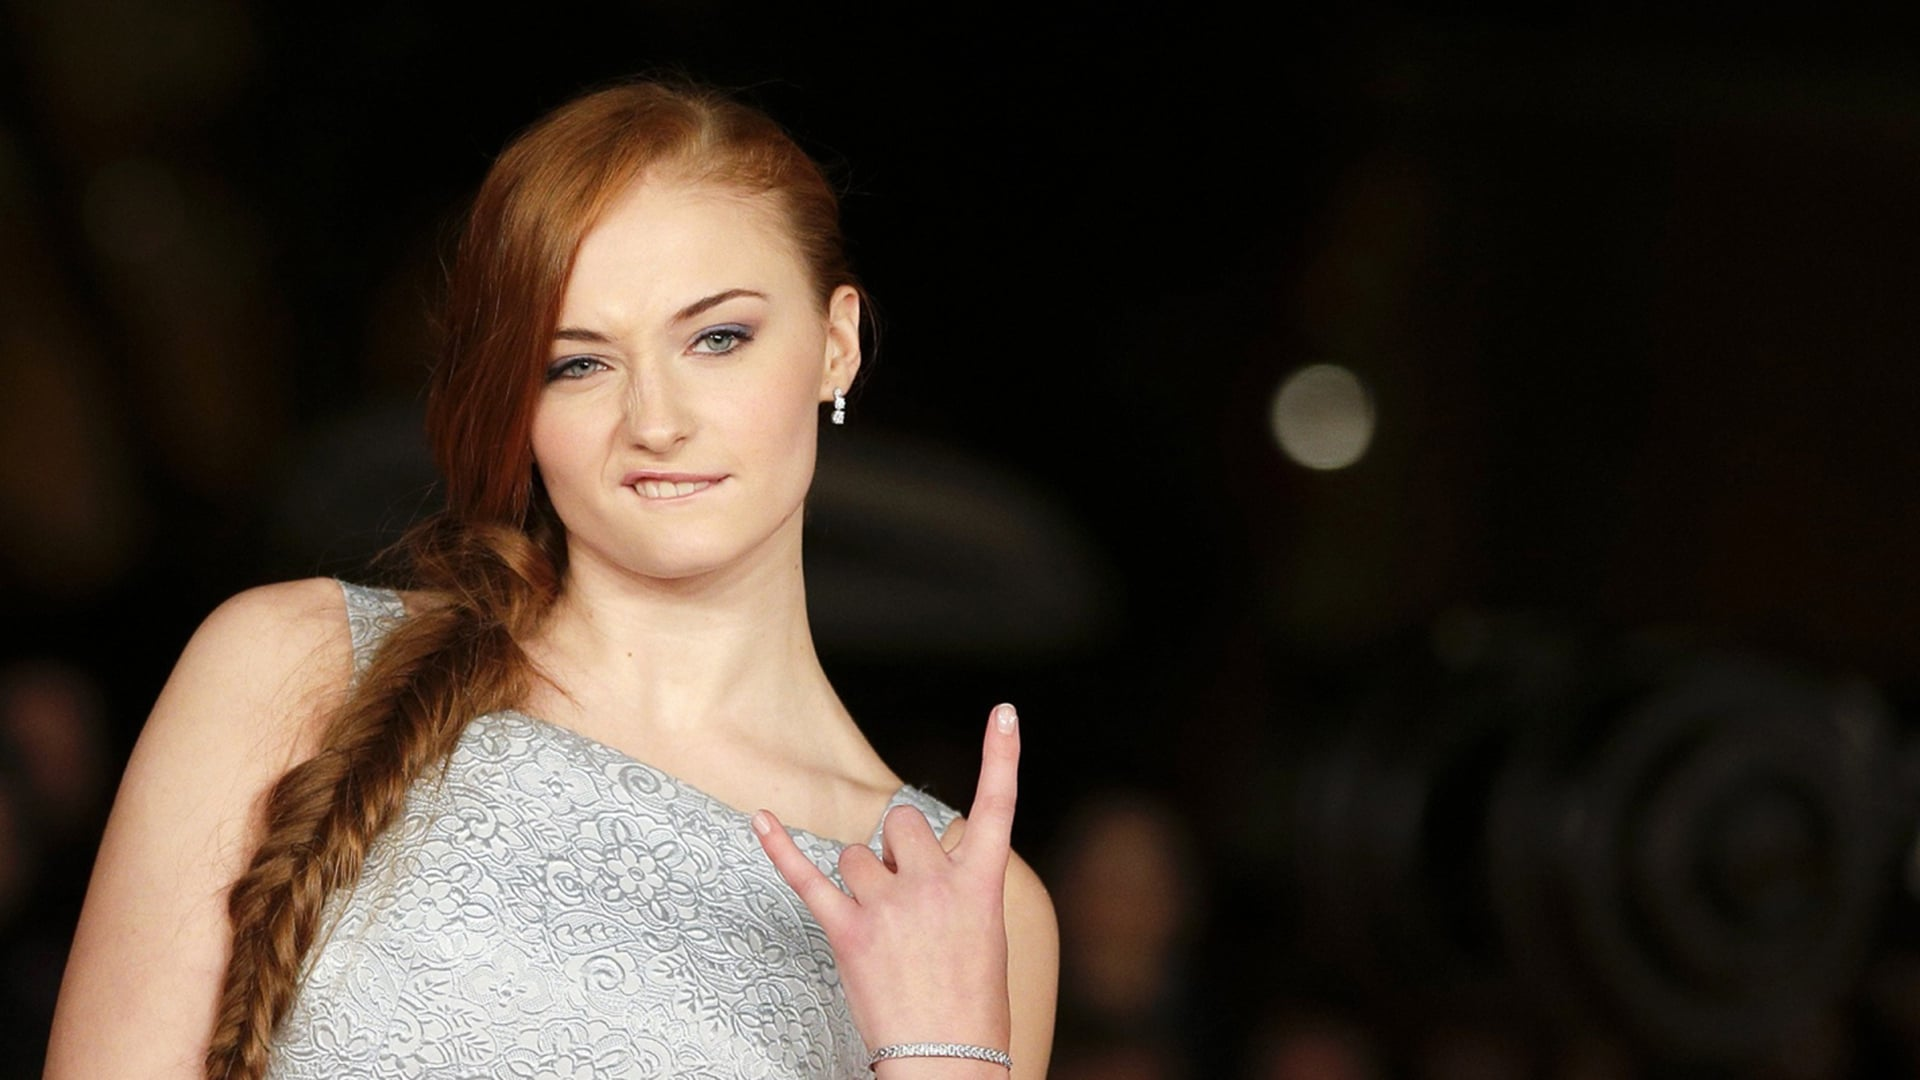 Amazing cool Sophie Turner picture